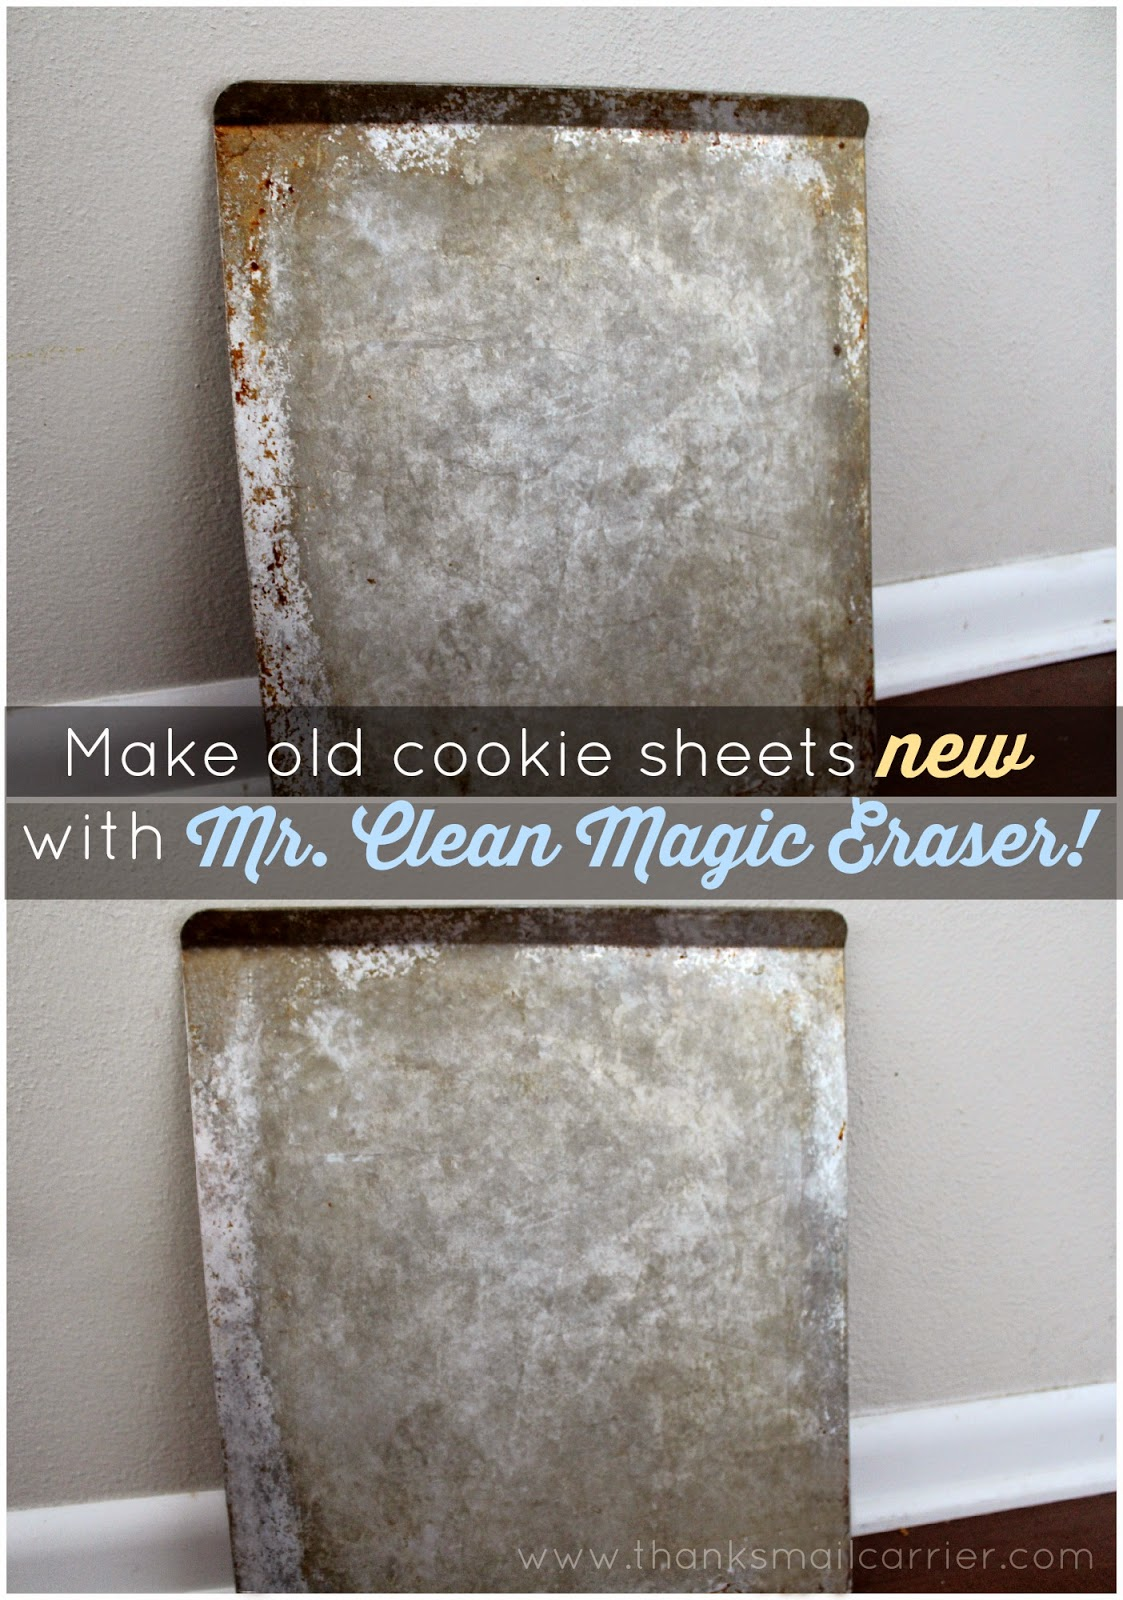 Mr. Clean Magic Eraser cookie sheets